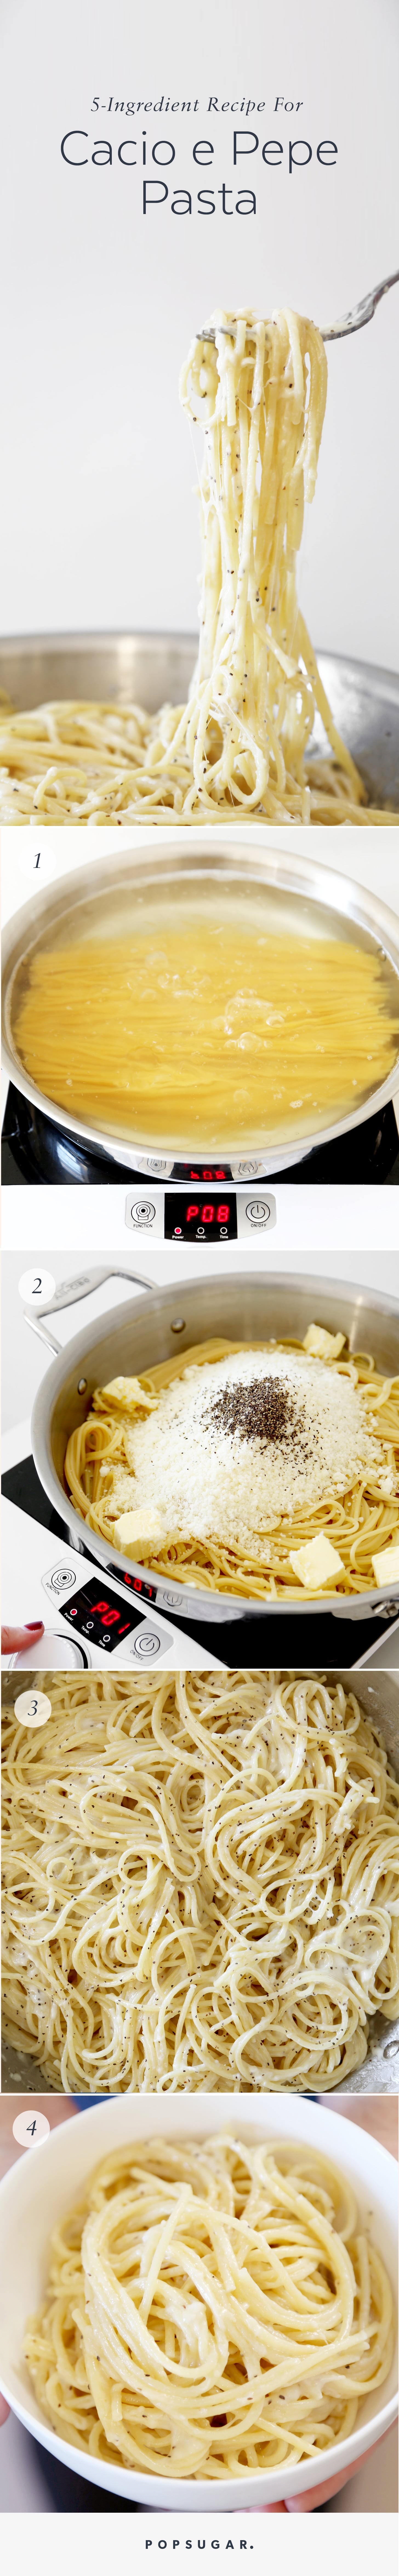 Fast Easy Five Ingredient Recipe For Cacio E Pepe Pasta